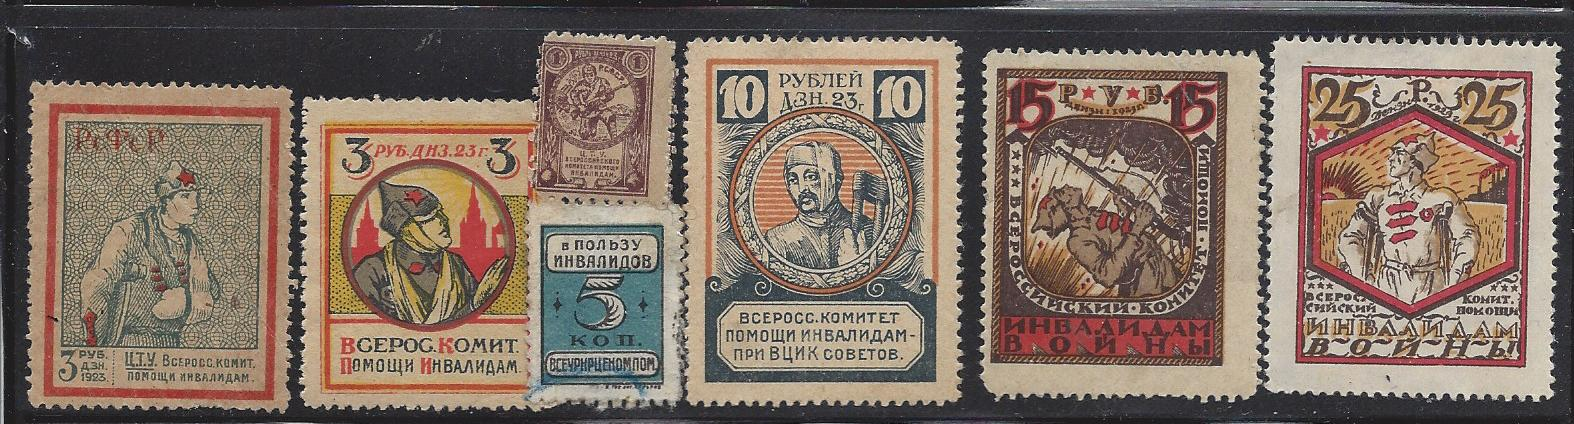 Russia Specialized - Postal Savings & Revenue Charity stamps Scott 3